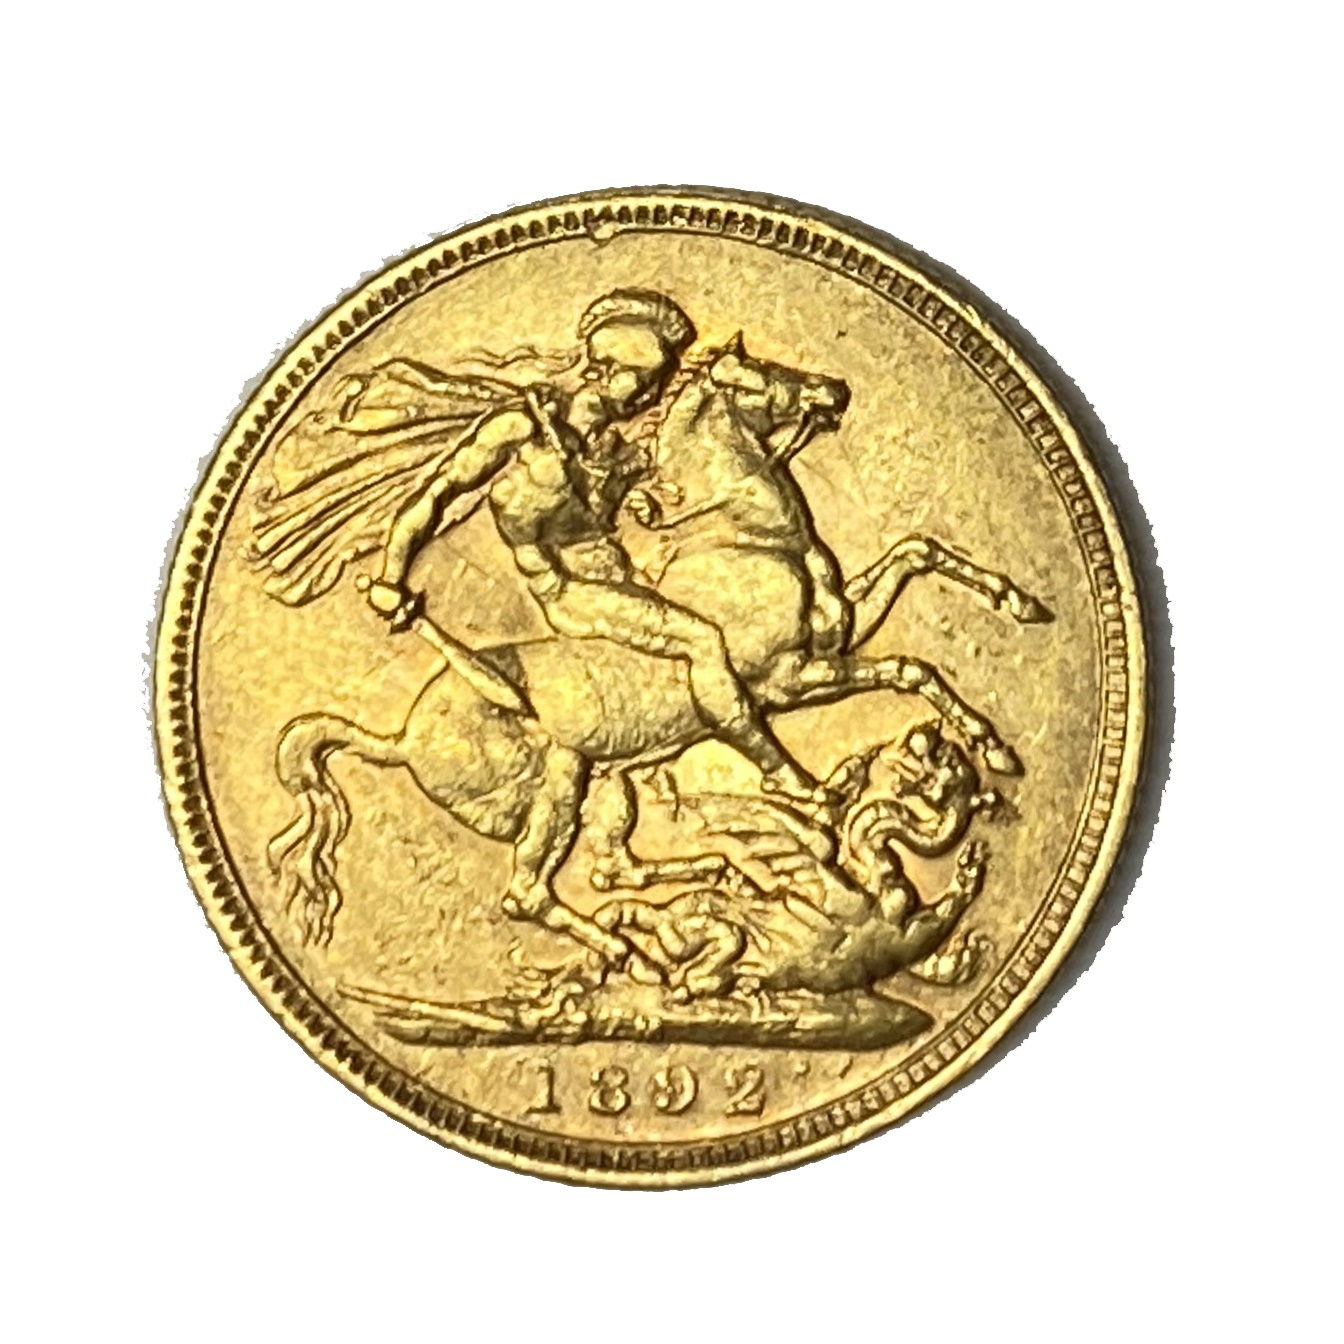 Queen Victoria gold Sovereign coin, 1892 - Image 2 of 2